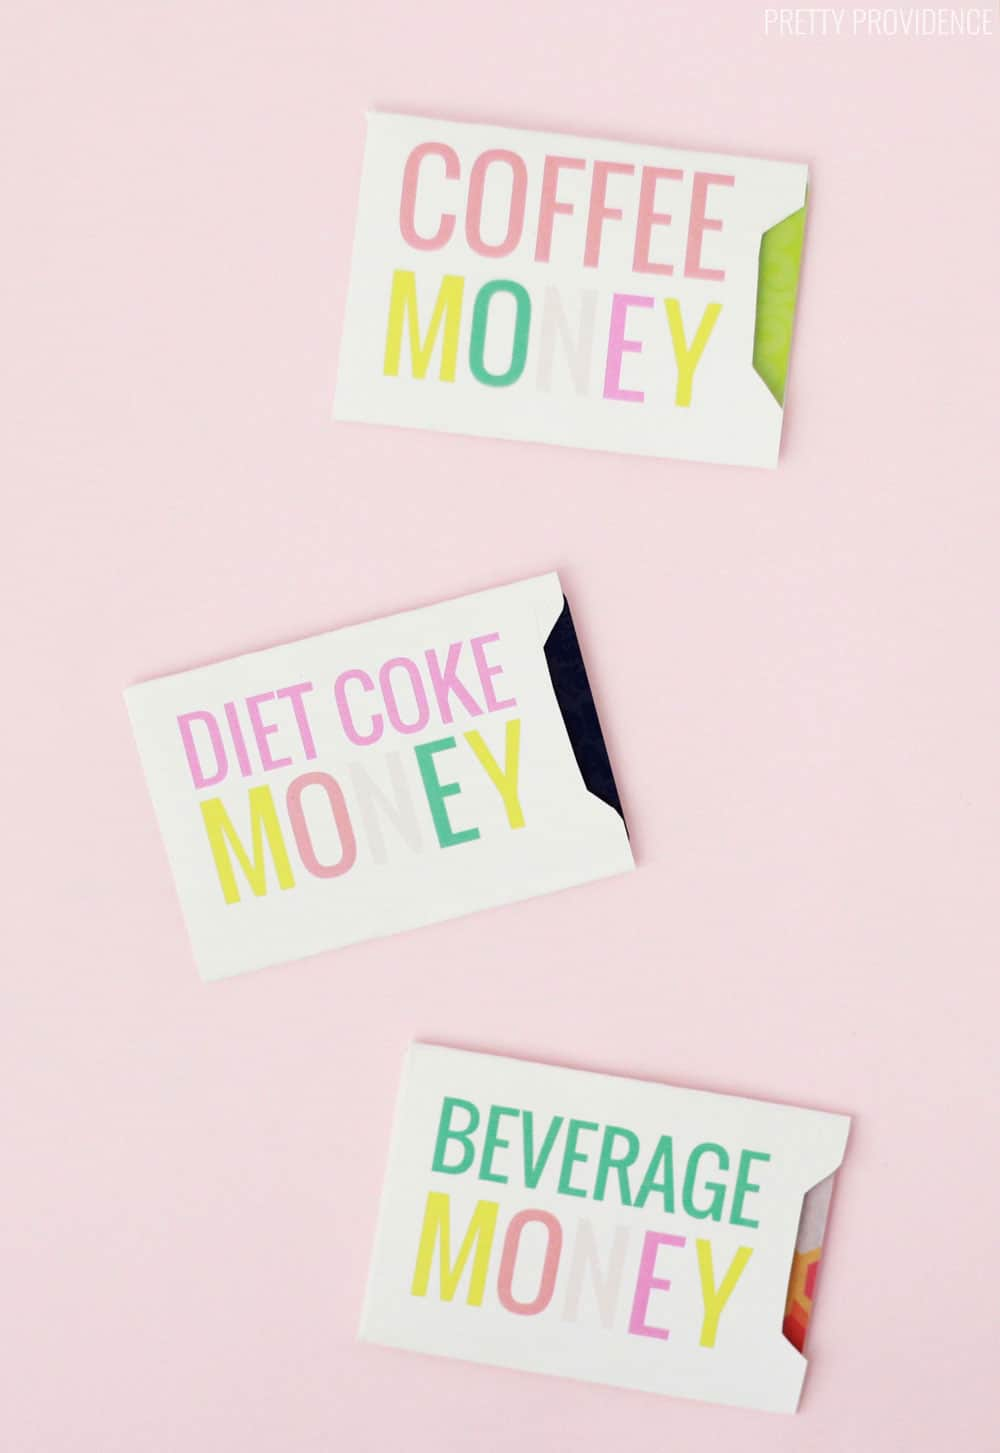 White gift card envelopes that say 'Diet Coke Money' 'Coffee Money' and 'Beverage Money' in colorful pink, green, yellow and coral letters, on a pink background.